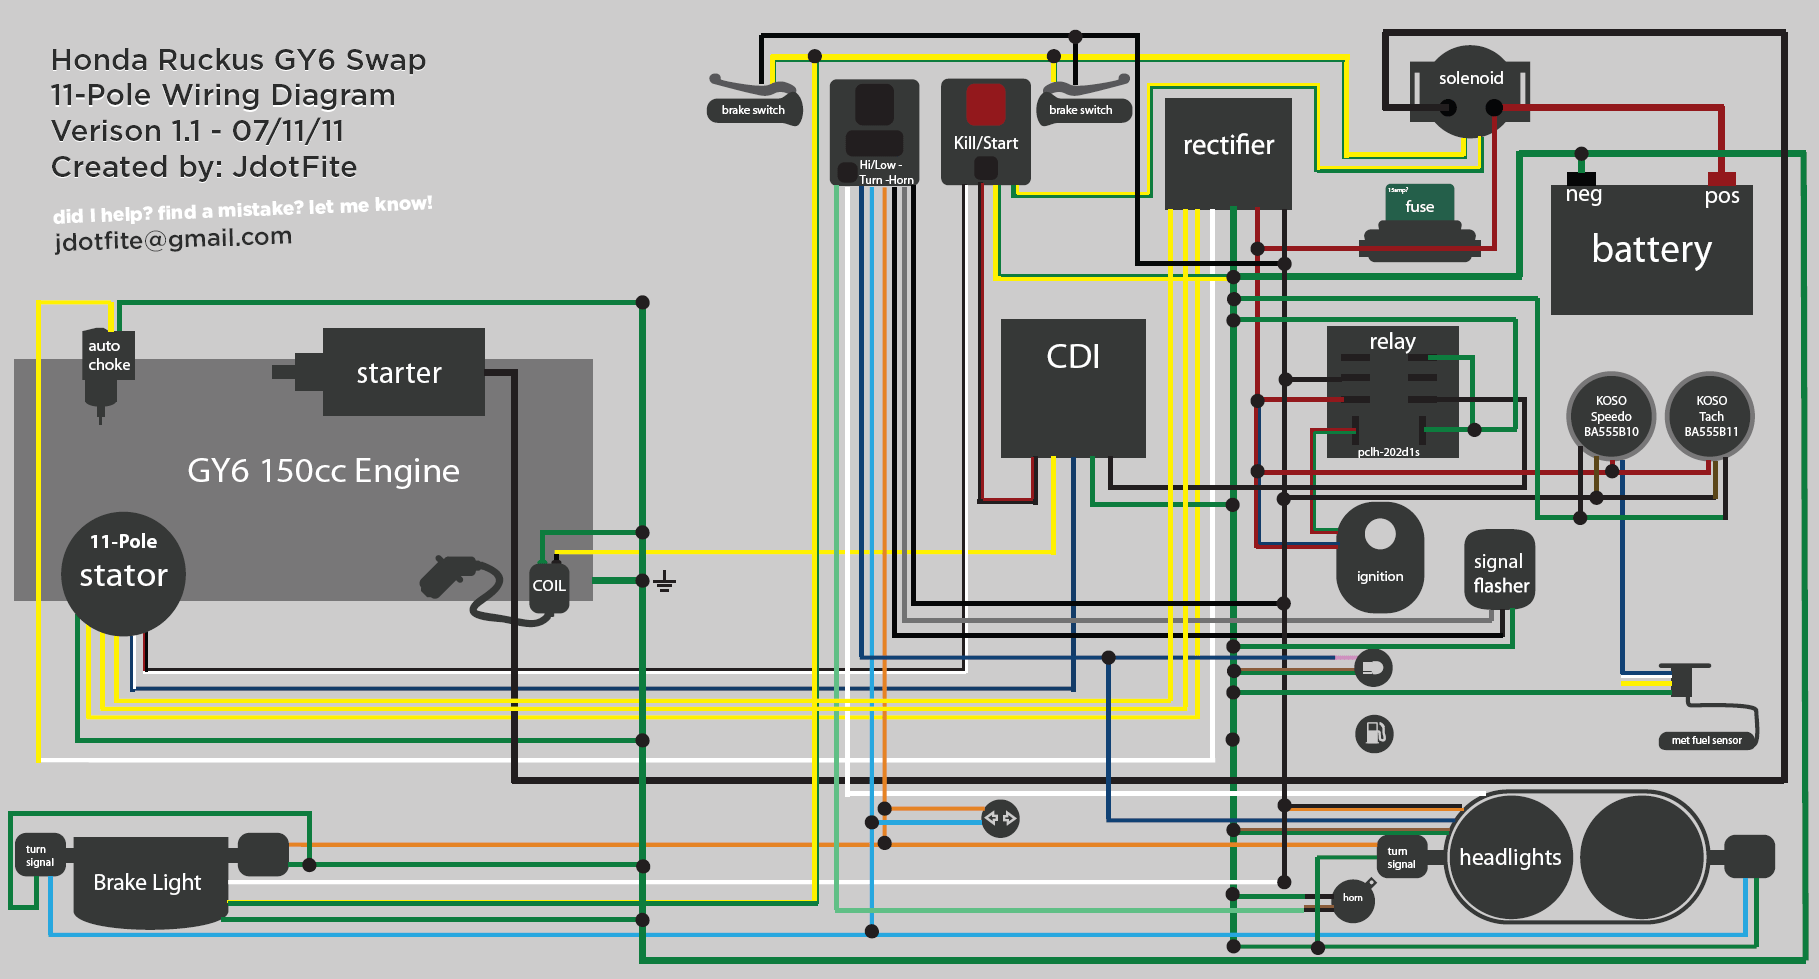 ruckus gy6 wiring diagram gy6 wiring diagram 150cc scooter wiring diagram \u2022 wiring diagrams australian xr650r wiring diagram at crackthecode.co